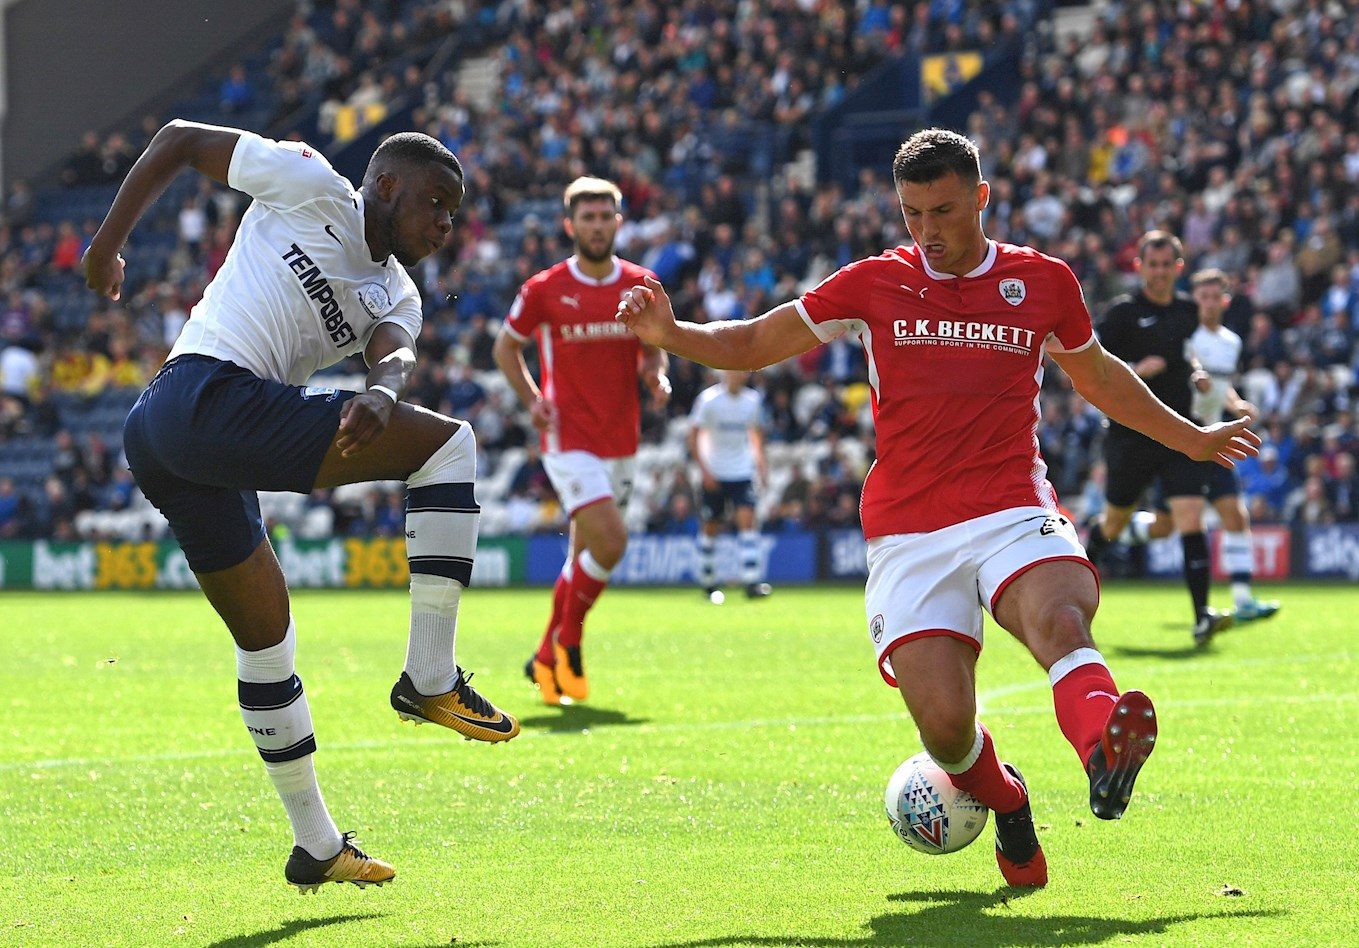 Matty Pearson shows his determination in action for Barnsley against Preston in the Championship last season